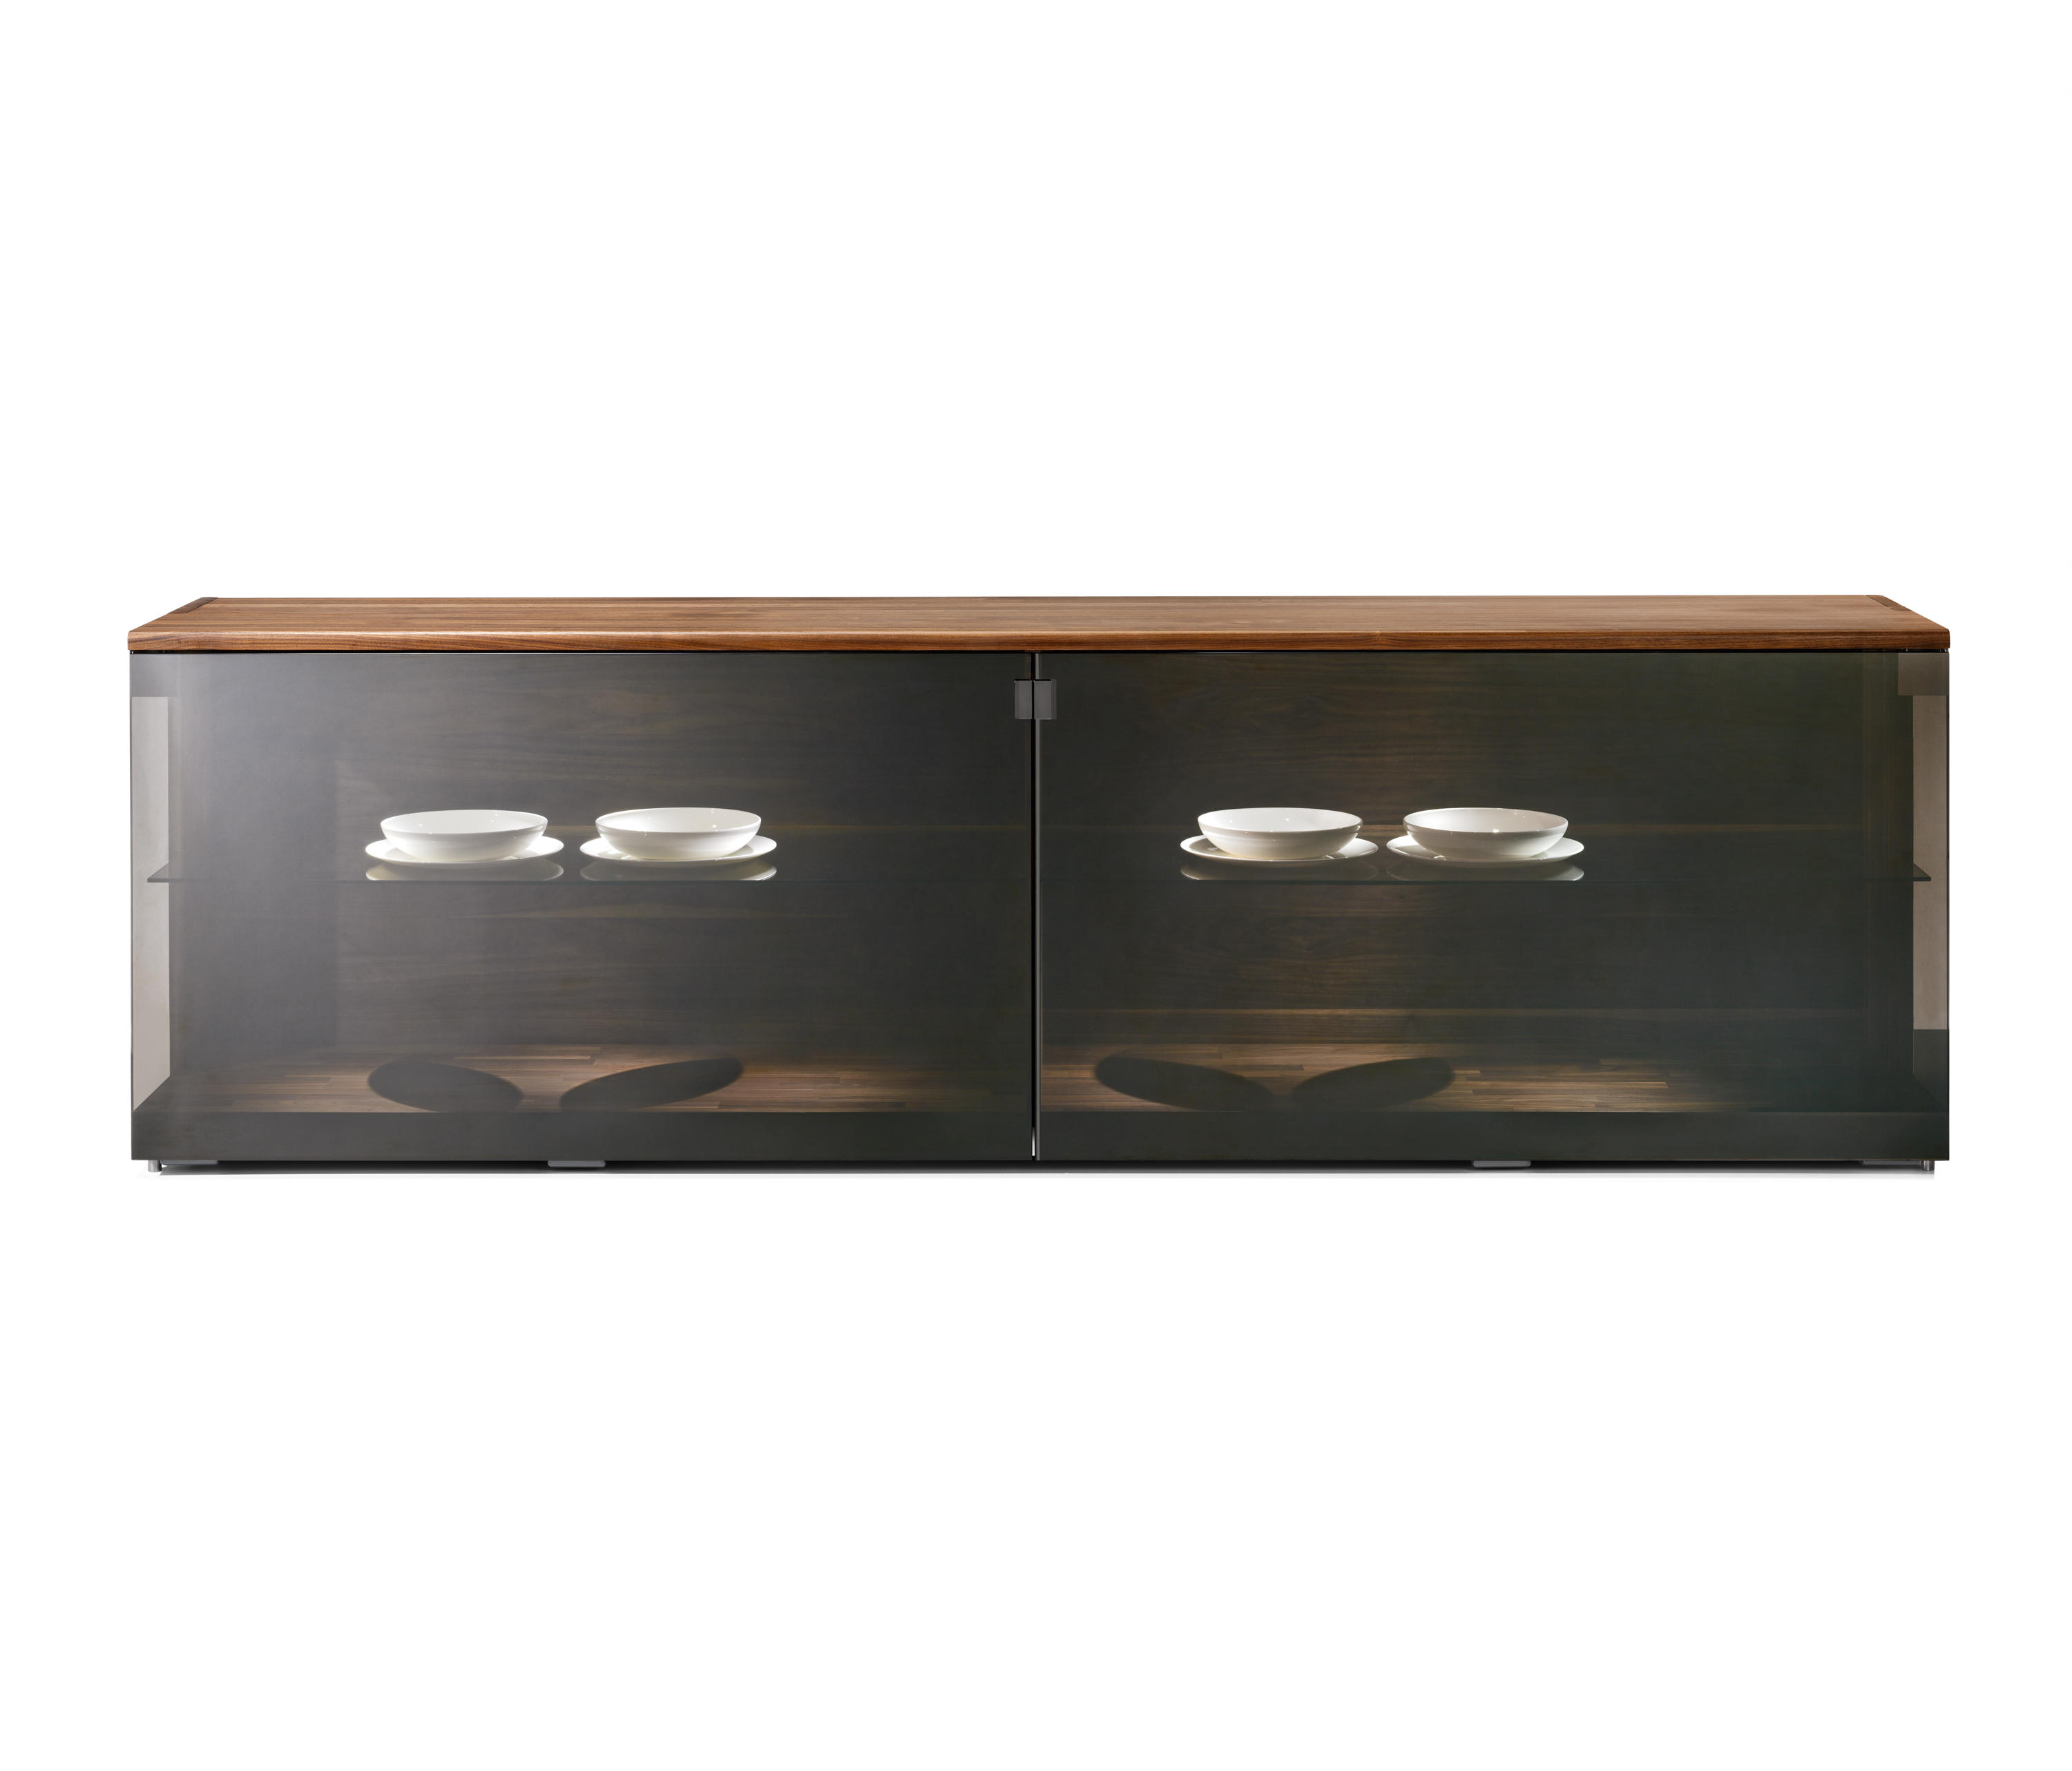 nox sideboard sideboards from team 7 architonic. Black Bedroom Furniture Sets. Home Design Ideas